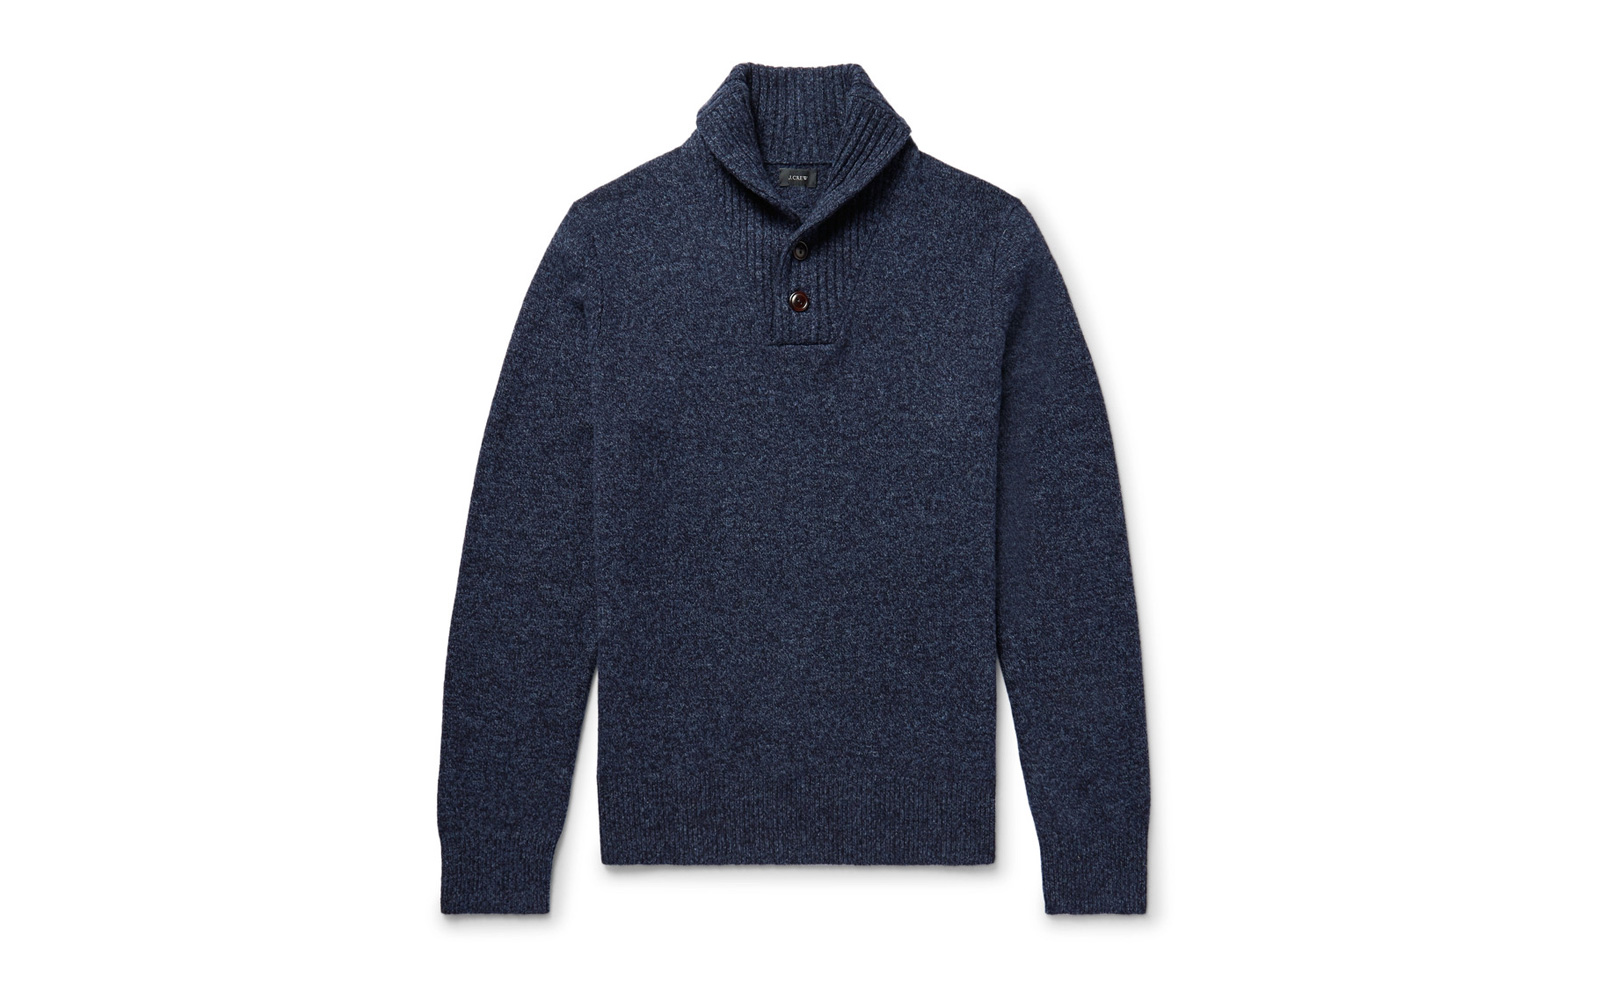 J Crew Shawl Collar Wool Sweater